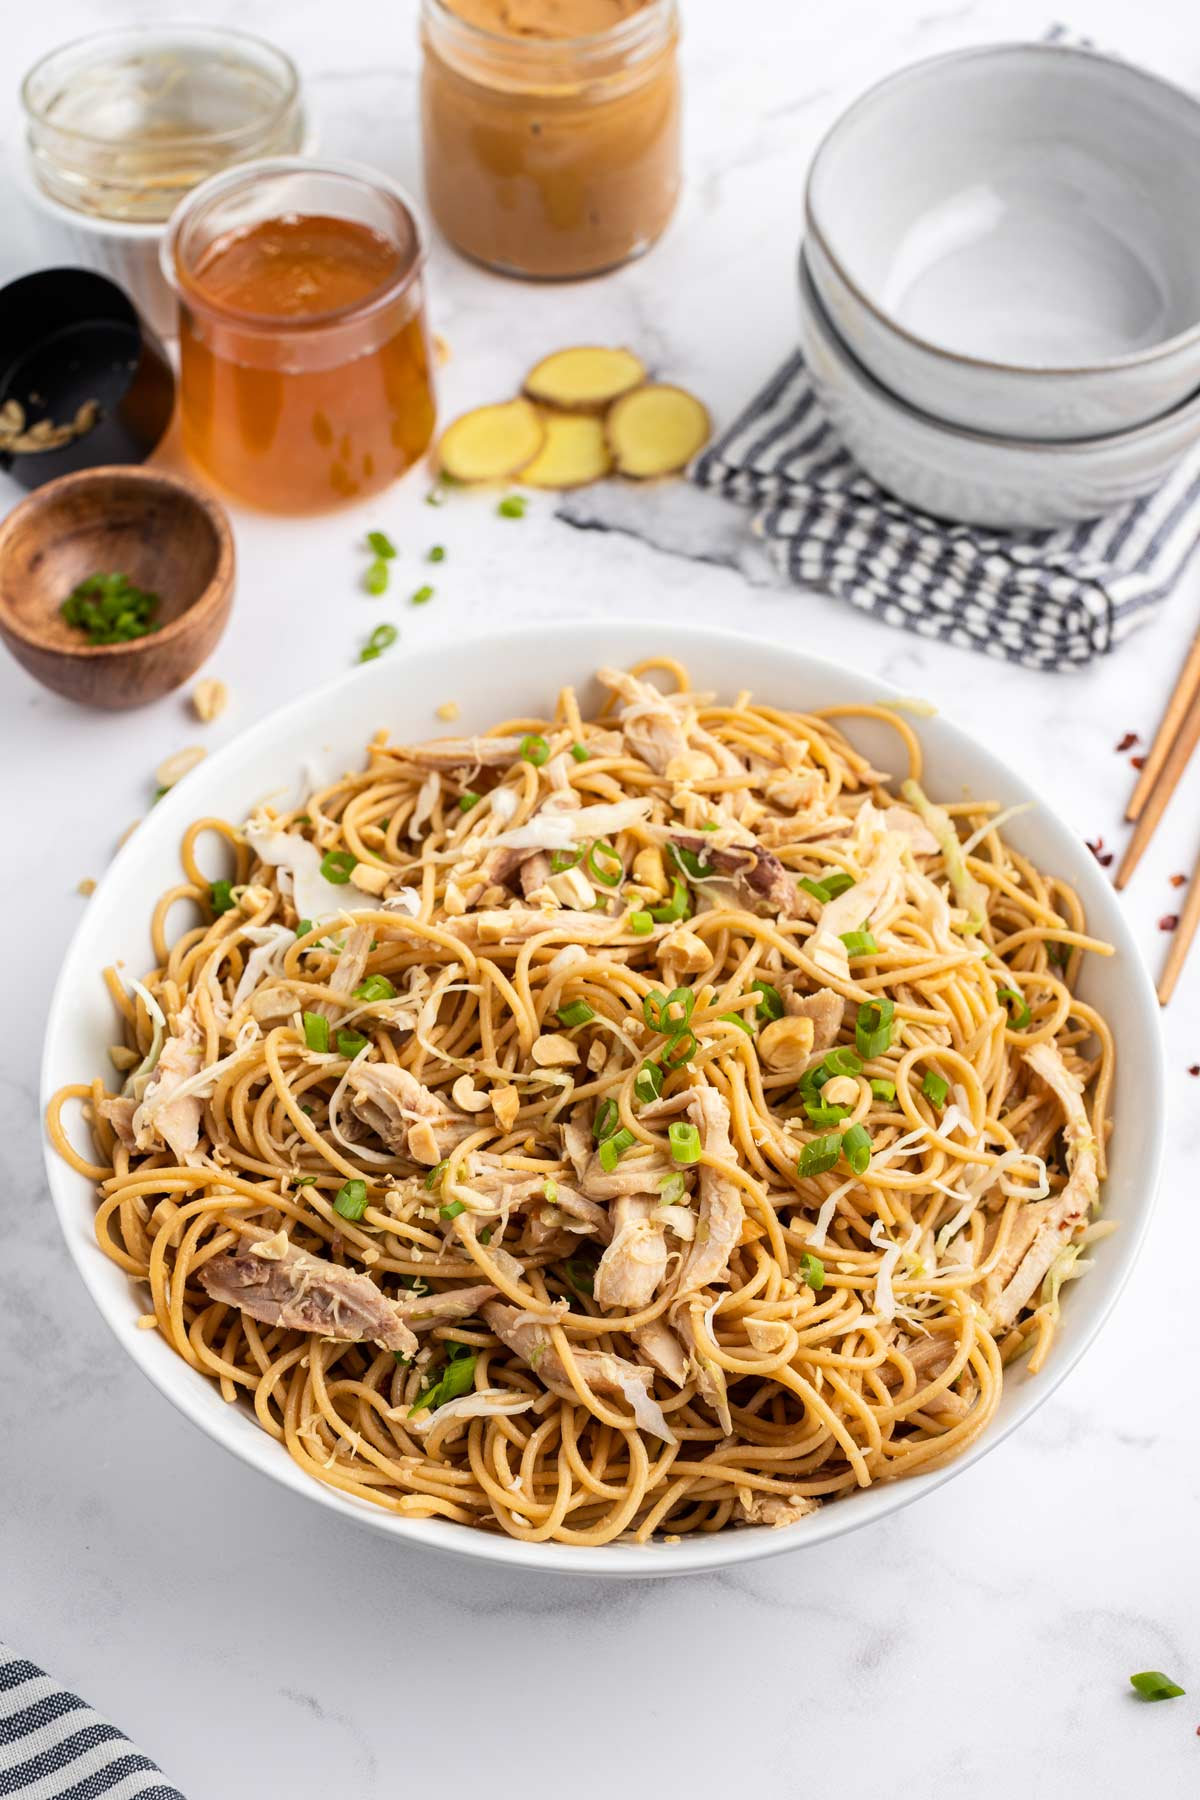 chicken sesame noodles in a white bowl.